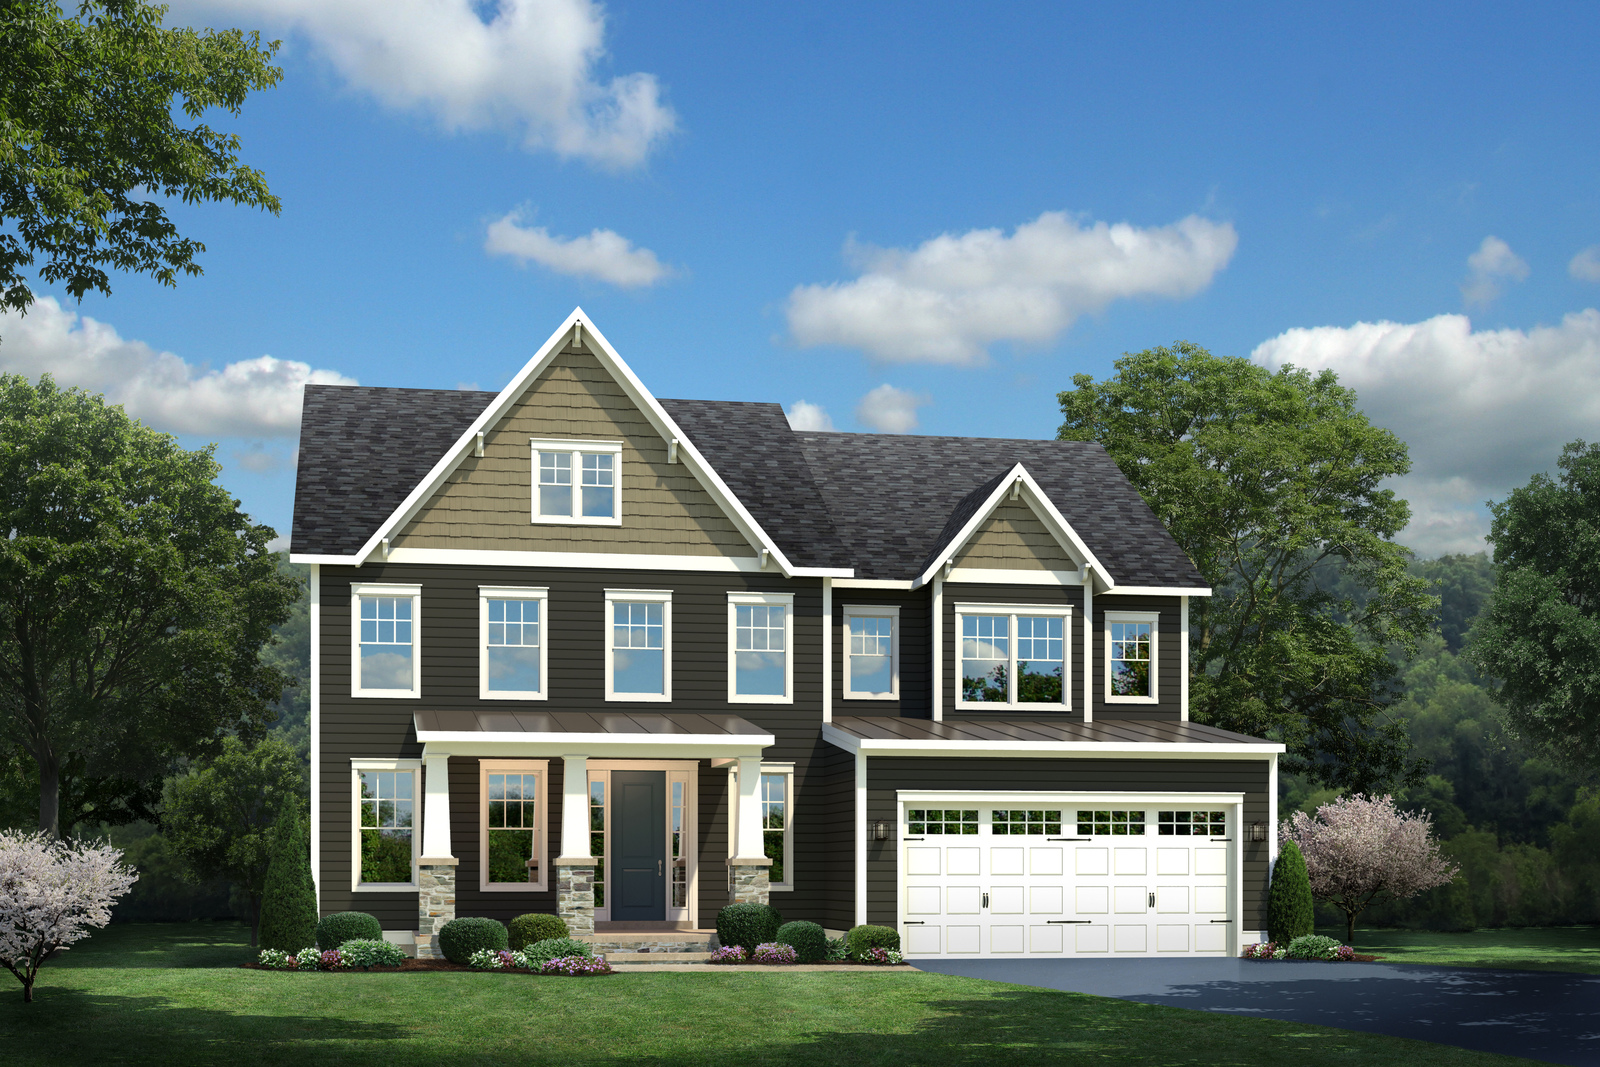 The Sycamore House New Luxury Homes for